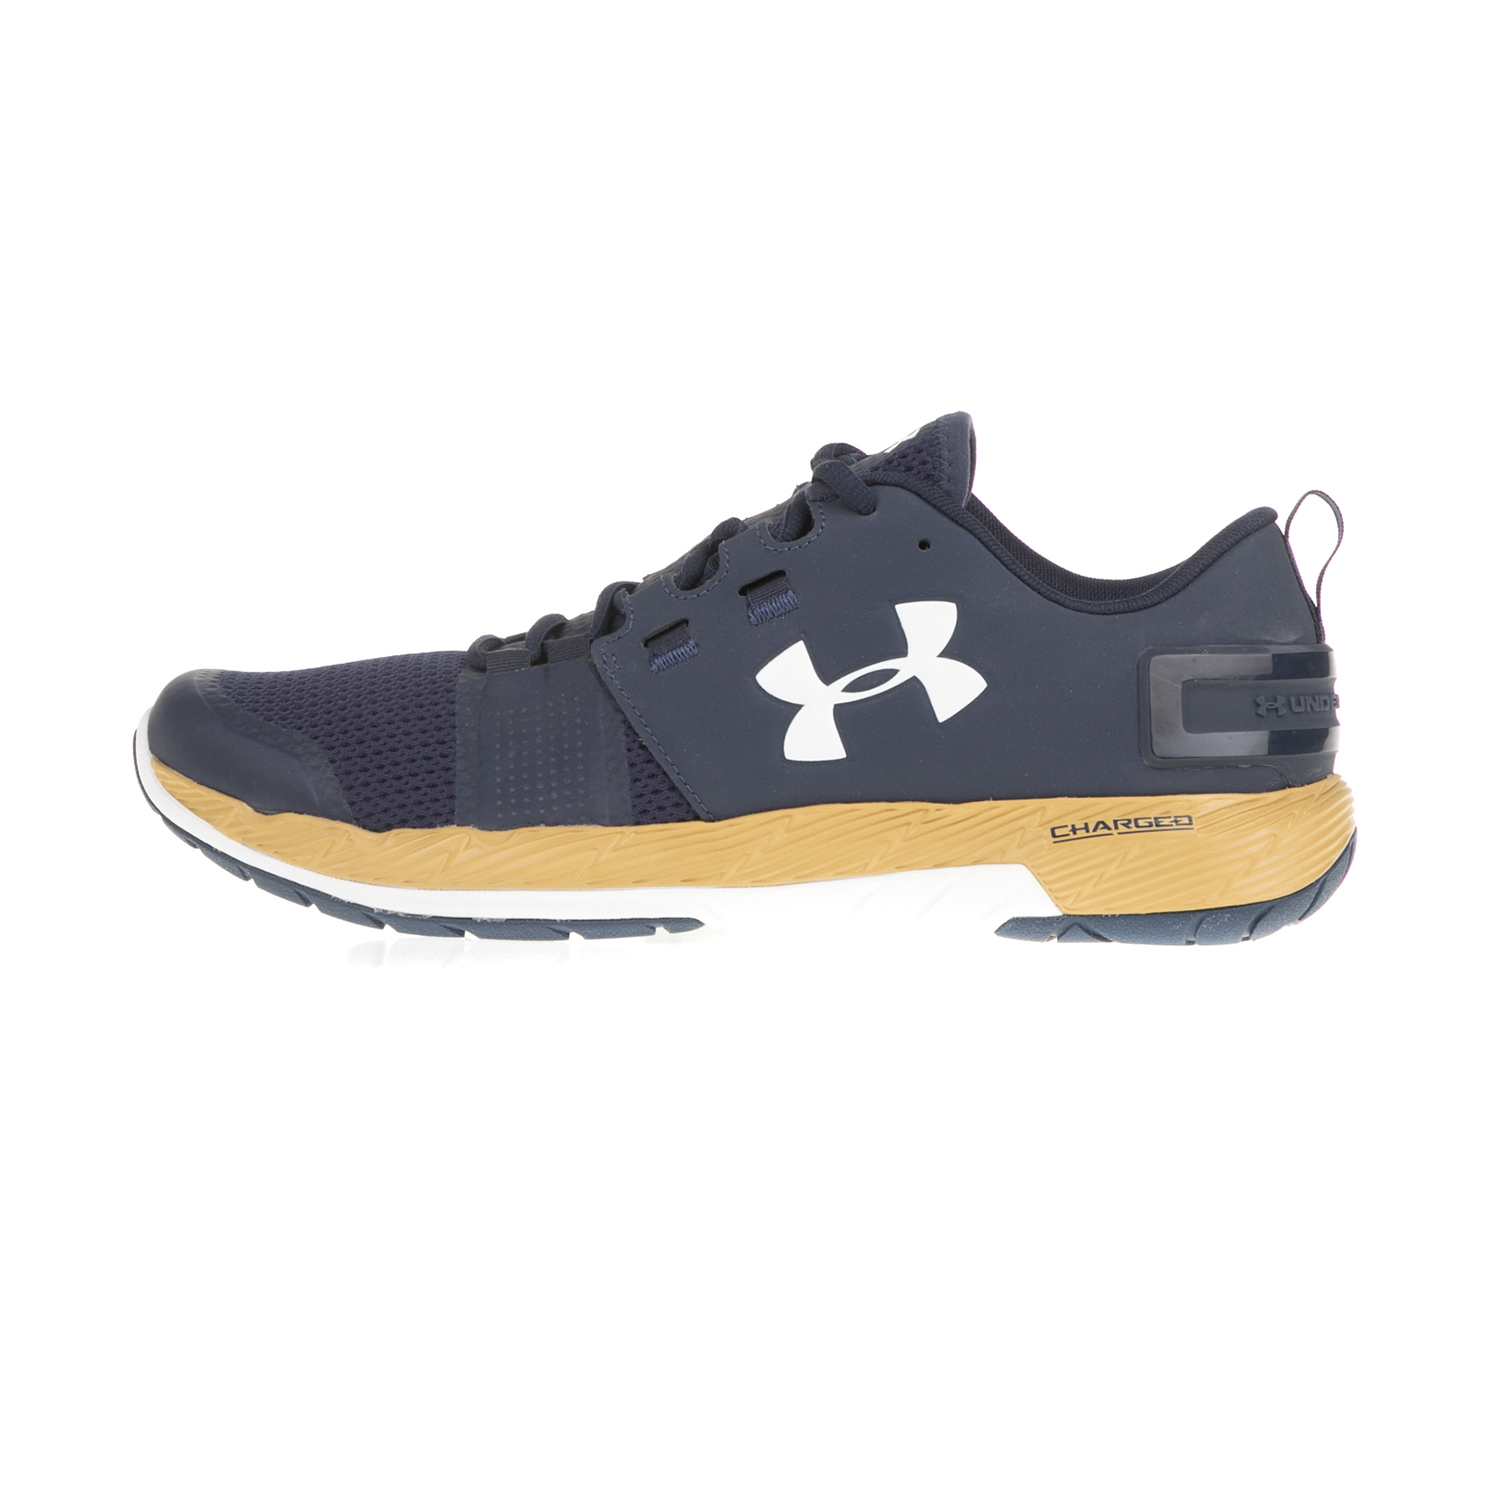 UNDER ARMOUR - Ανδρικά αθλητικά παπούτσια UNDER ARMOUR Commit TR γκρι ανδρικά παπούτσια αθλητικά training